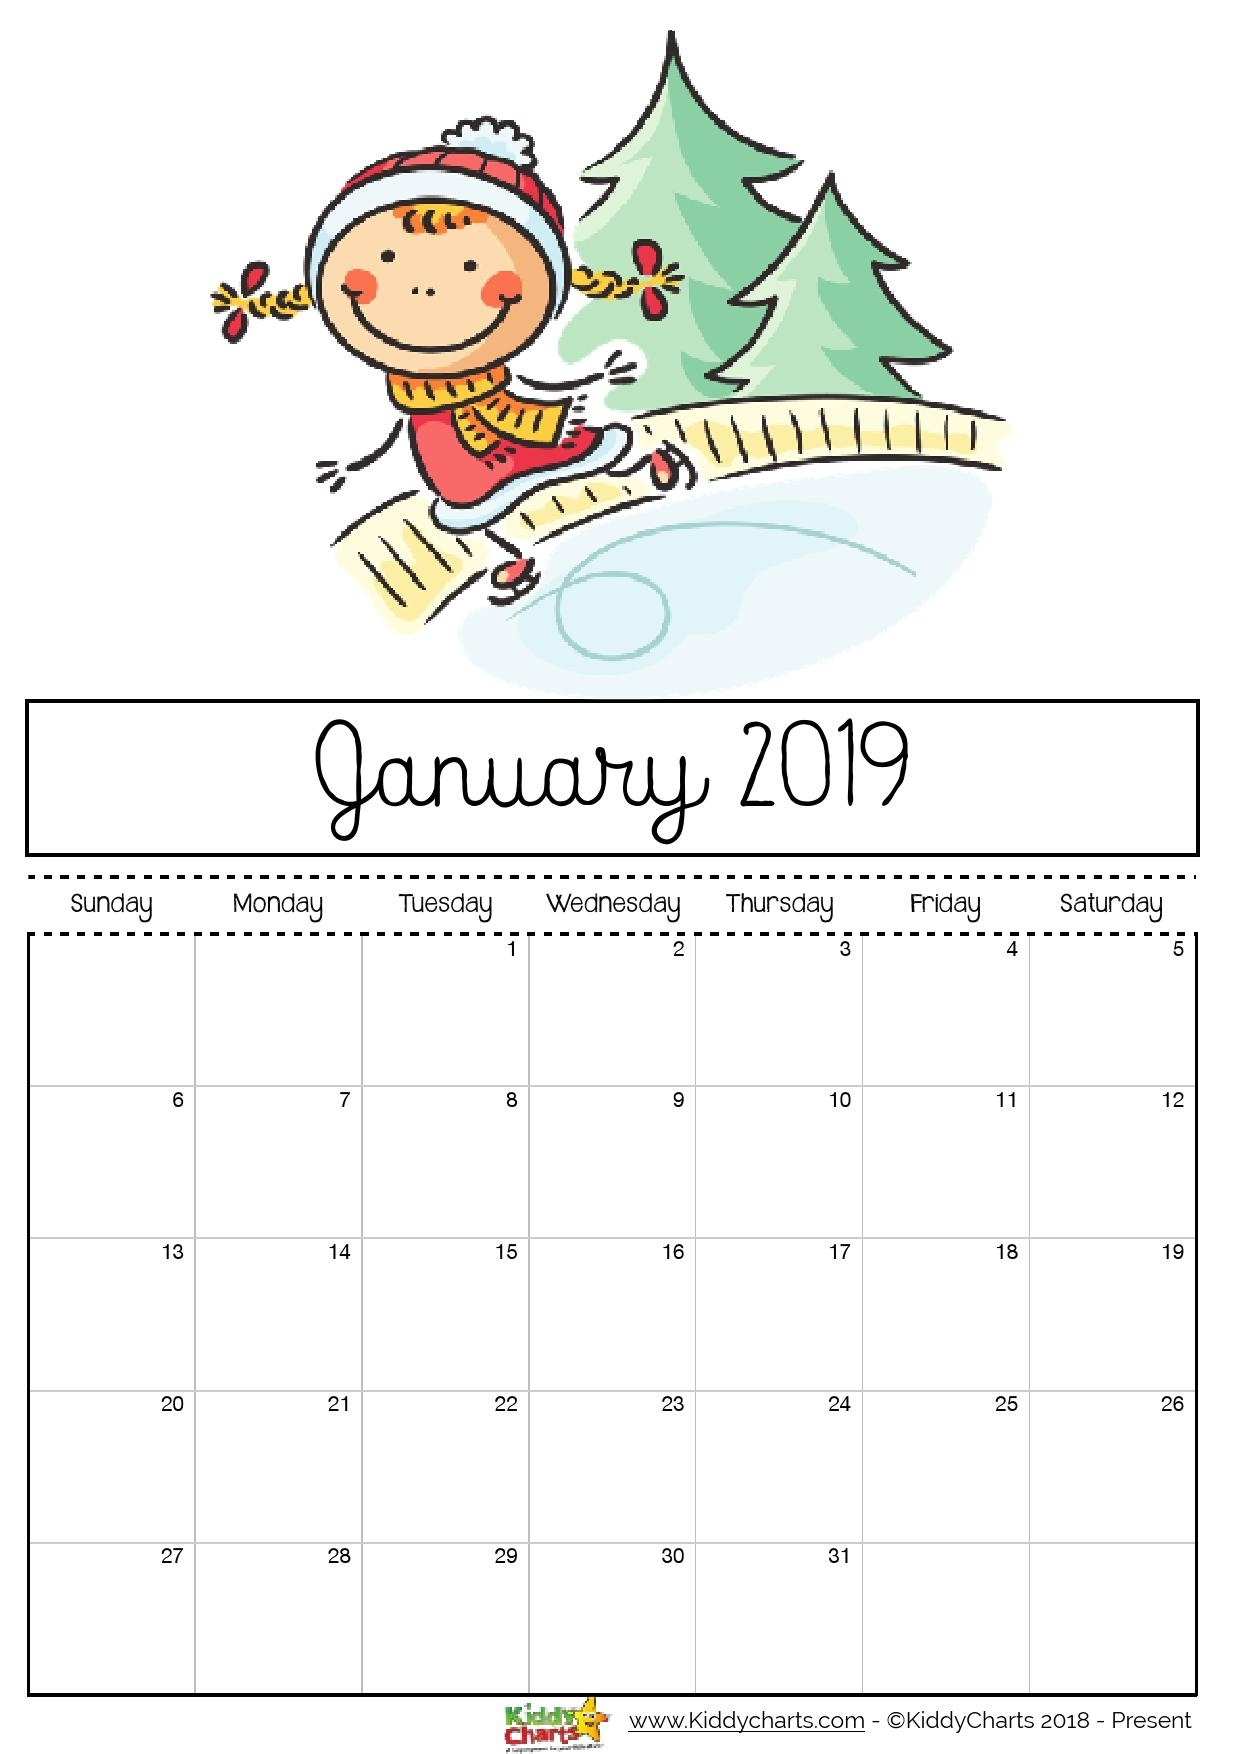 Free Printable 2019 Calendar - Print Yours Here | Kiddycharts with regard to Monthly Planner Template For Children